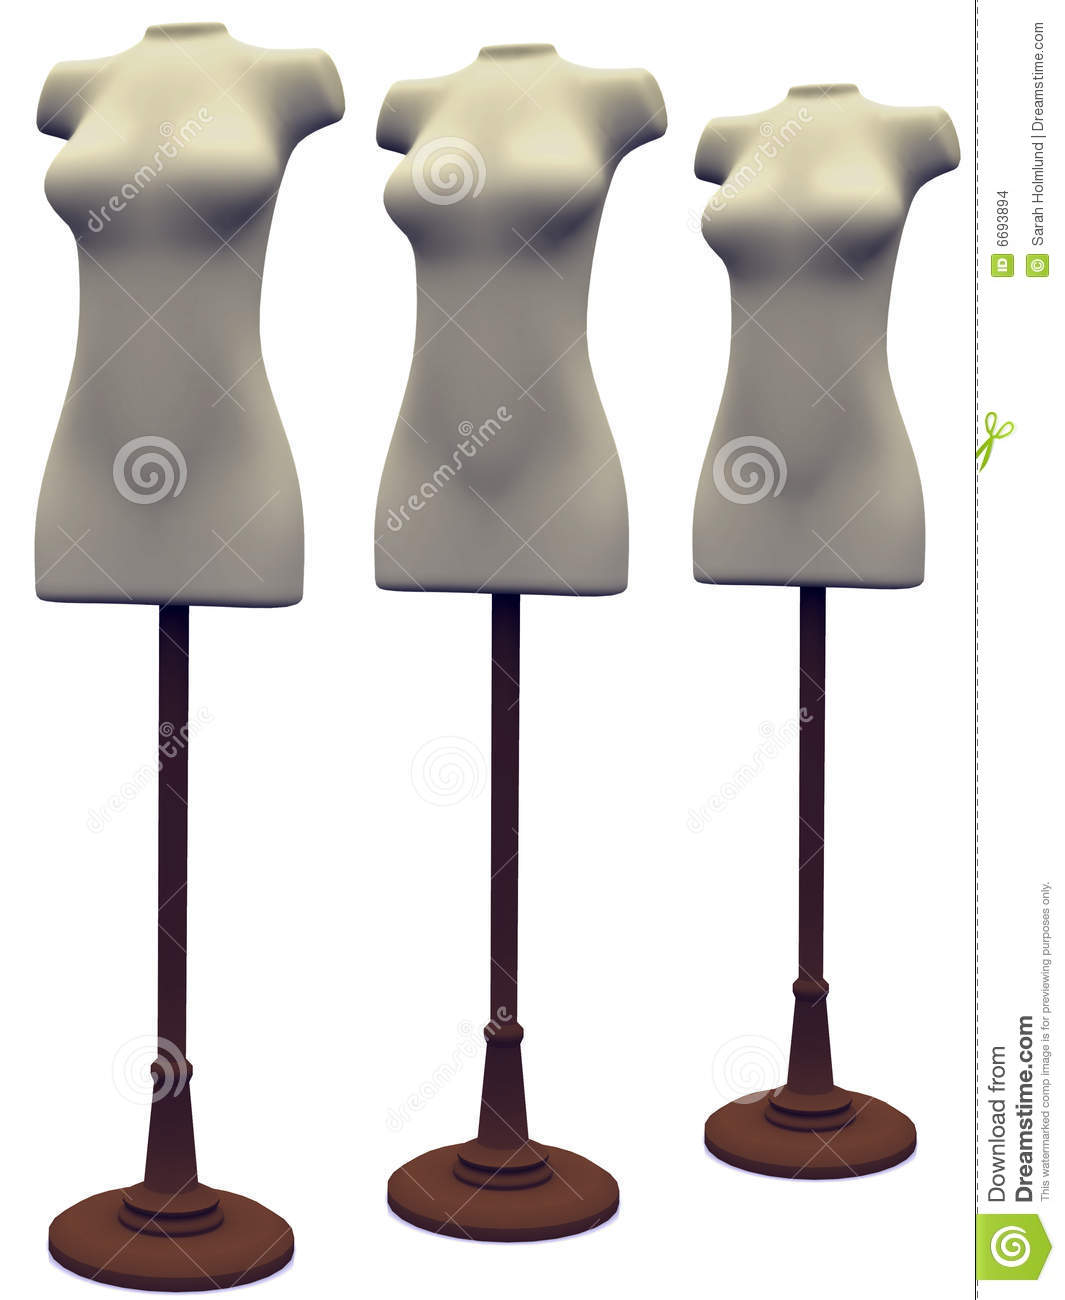 Ihram Kids For Sale Dubai: Store Mannequins Stock Images